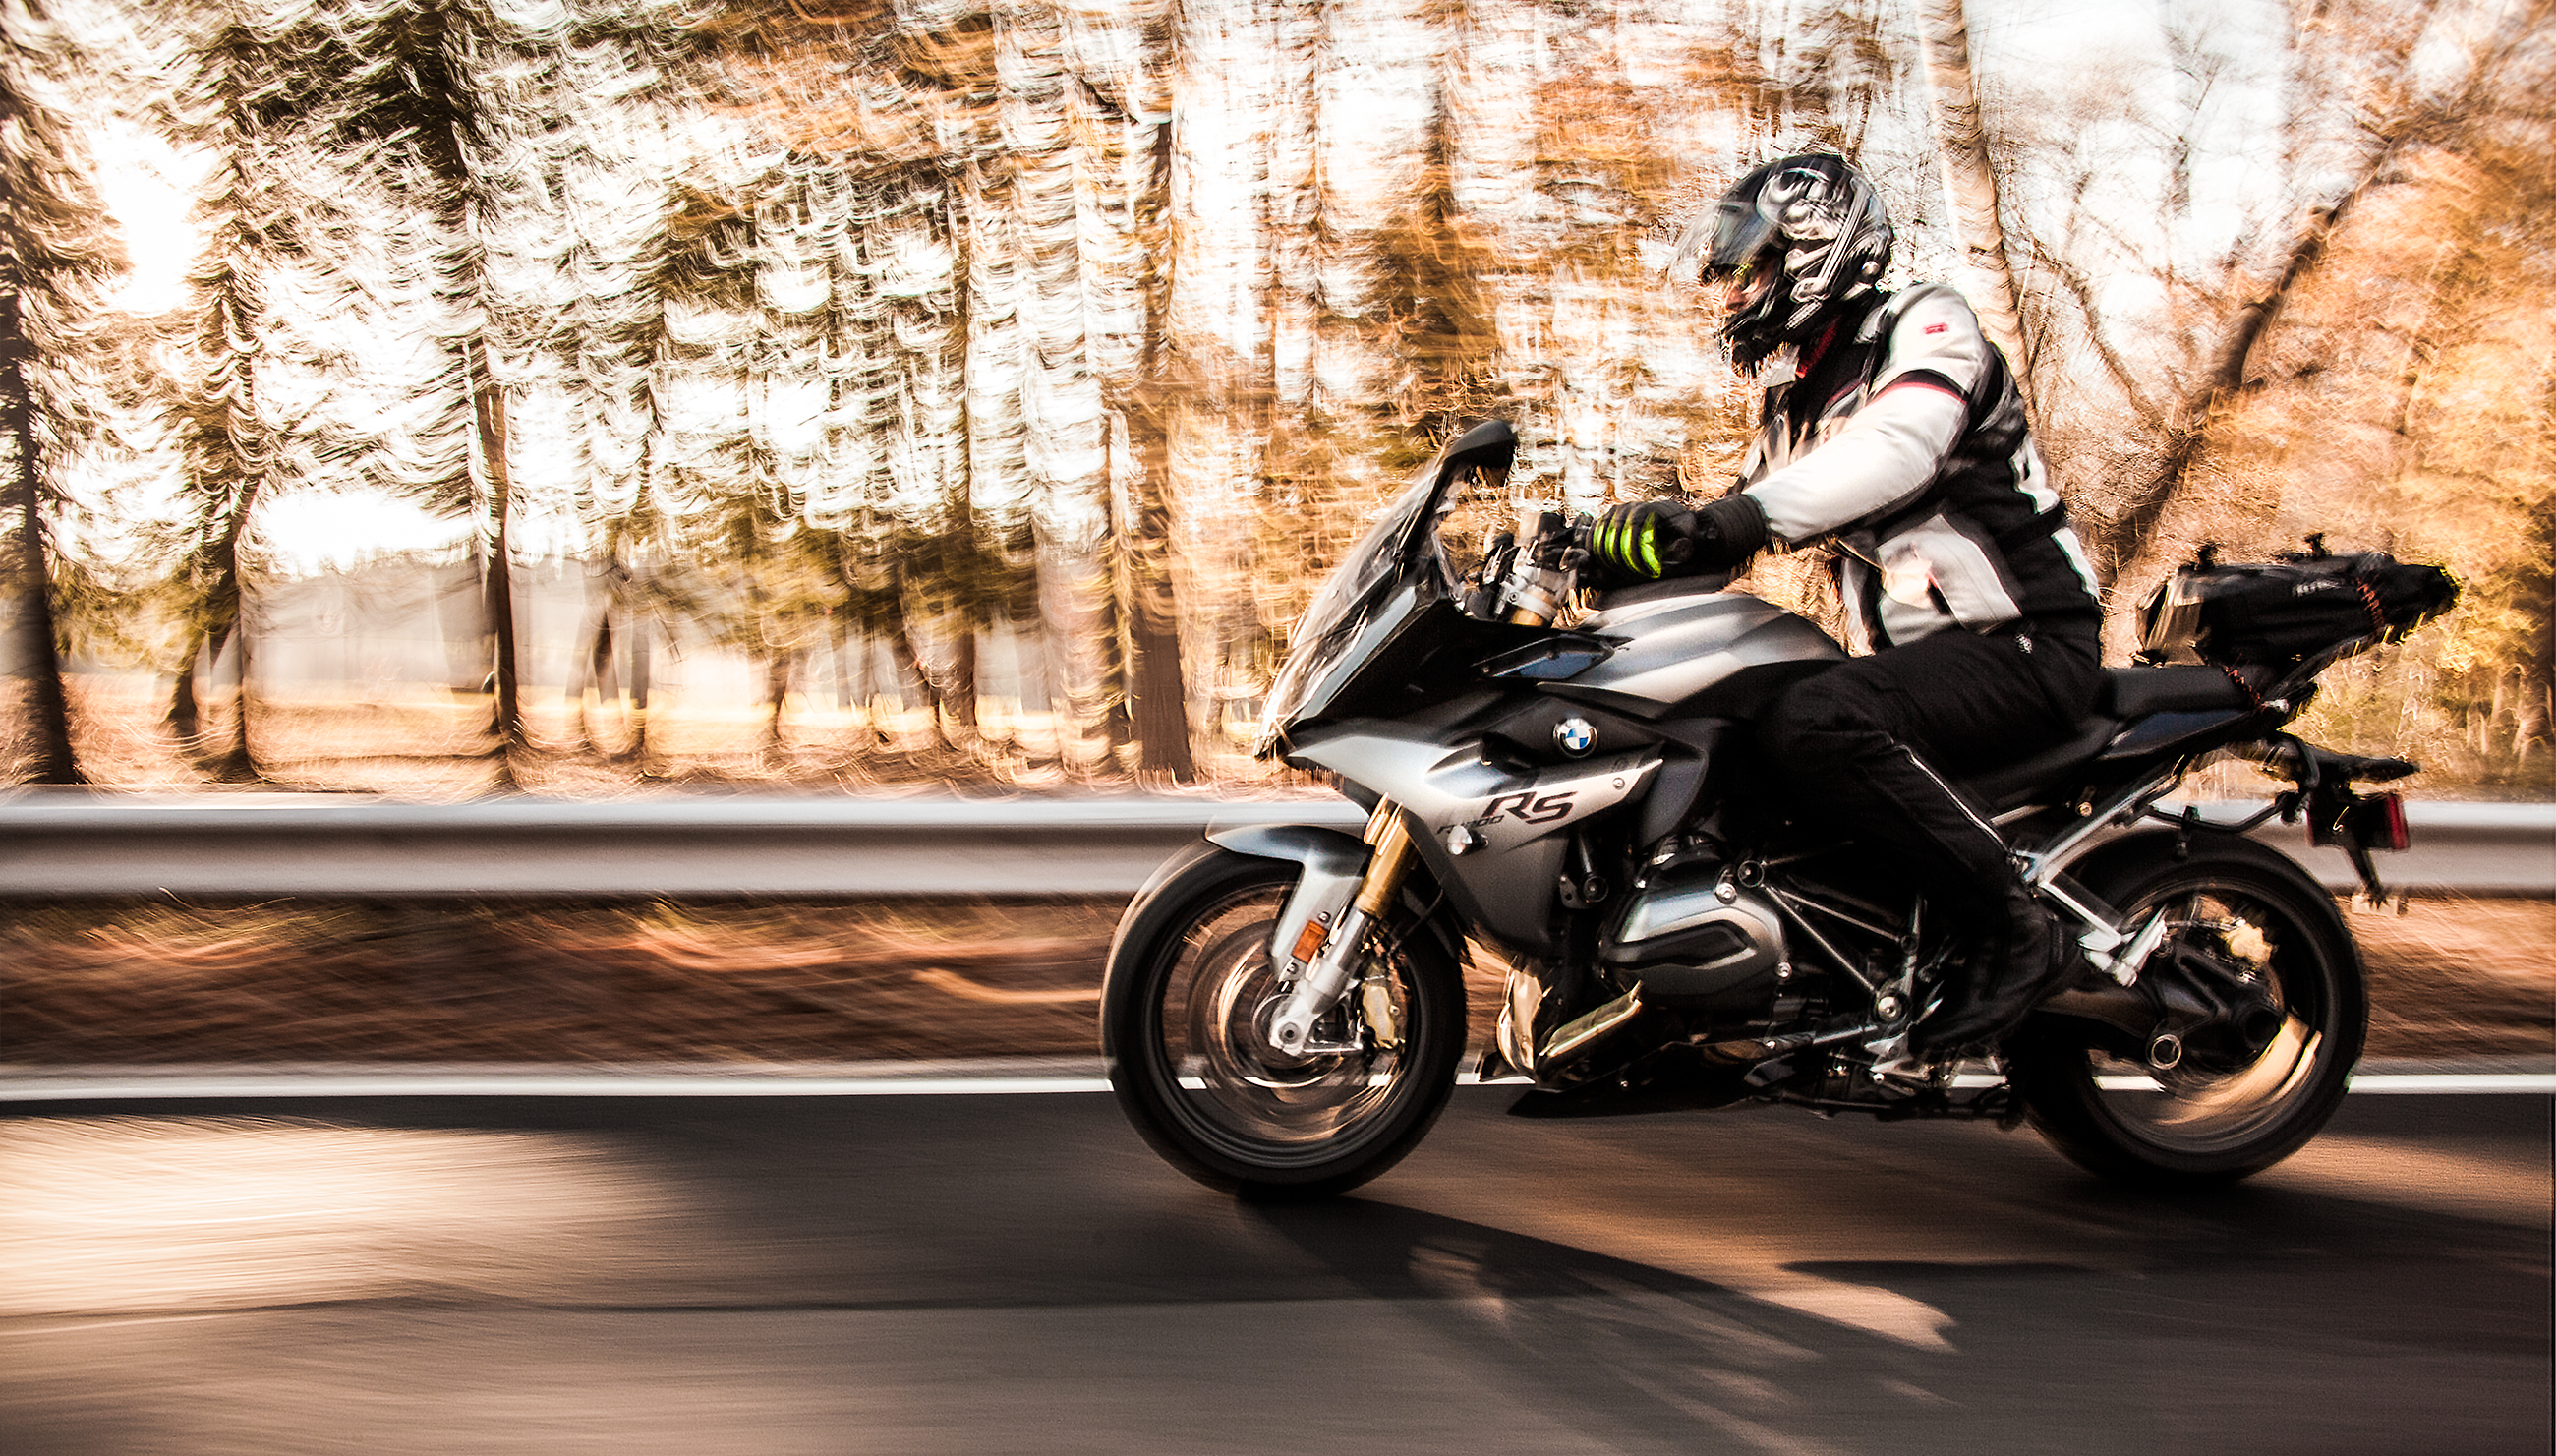 2016 BMW R 1200 RS review - RevZilla